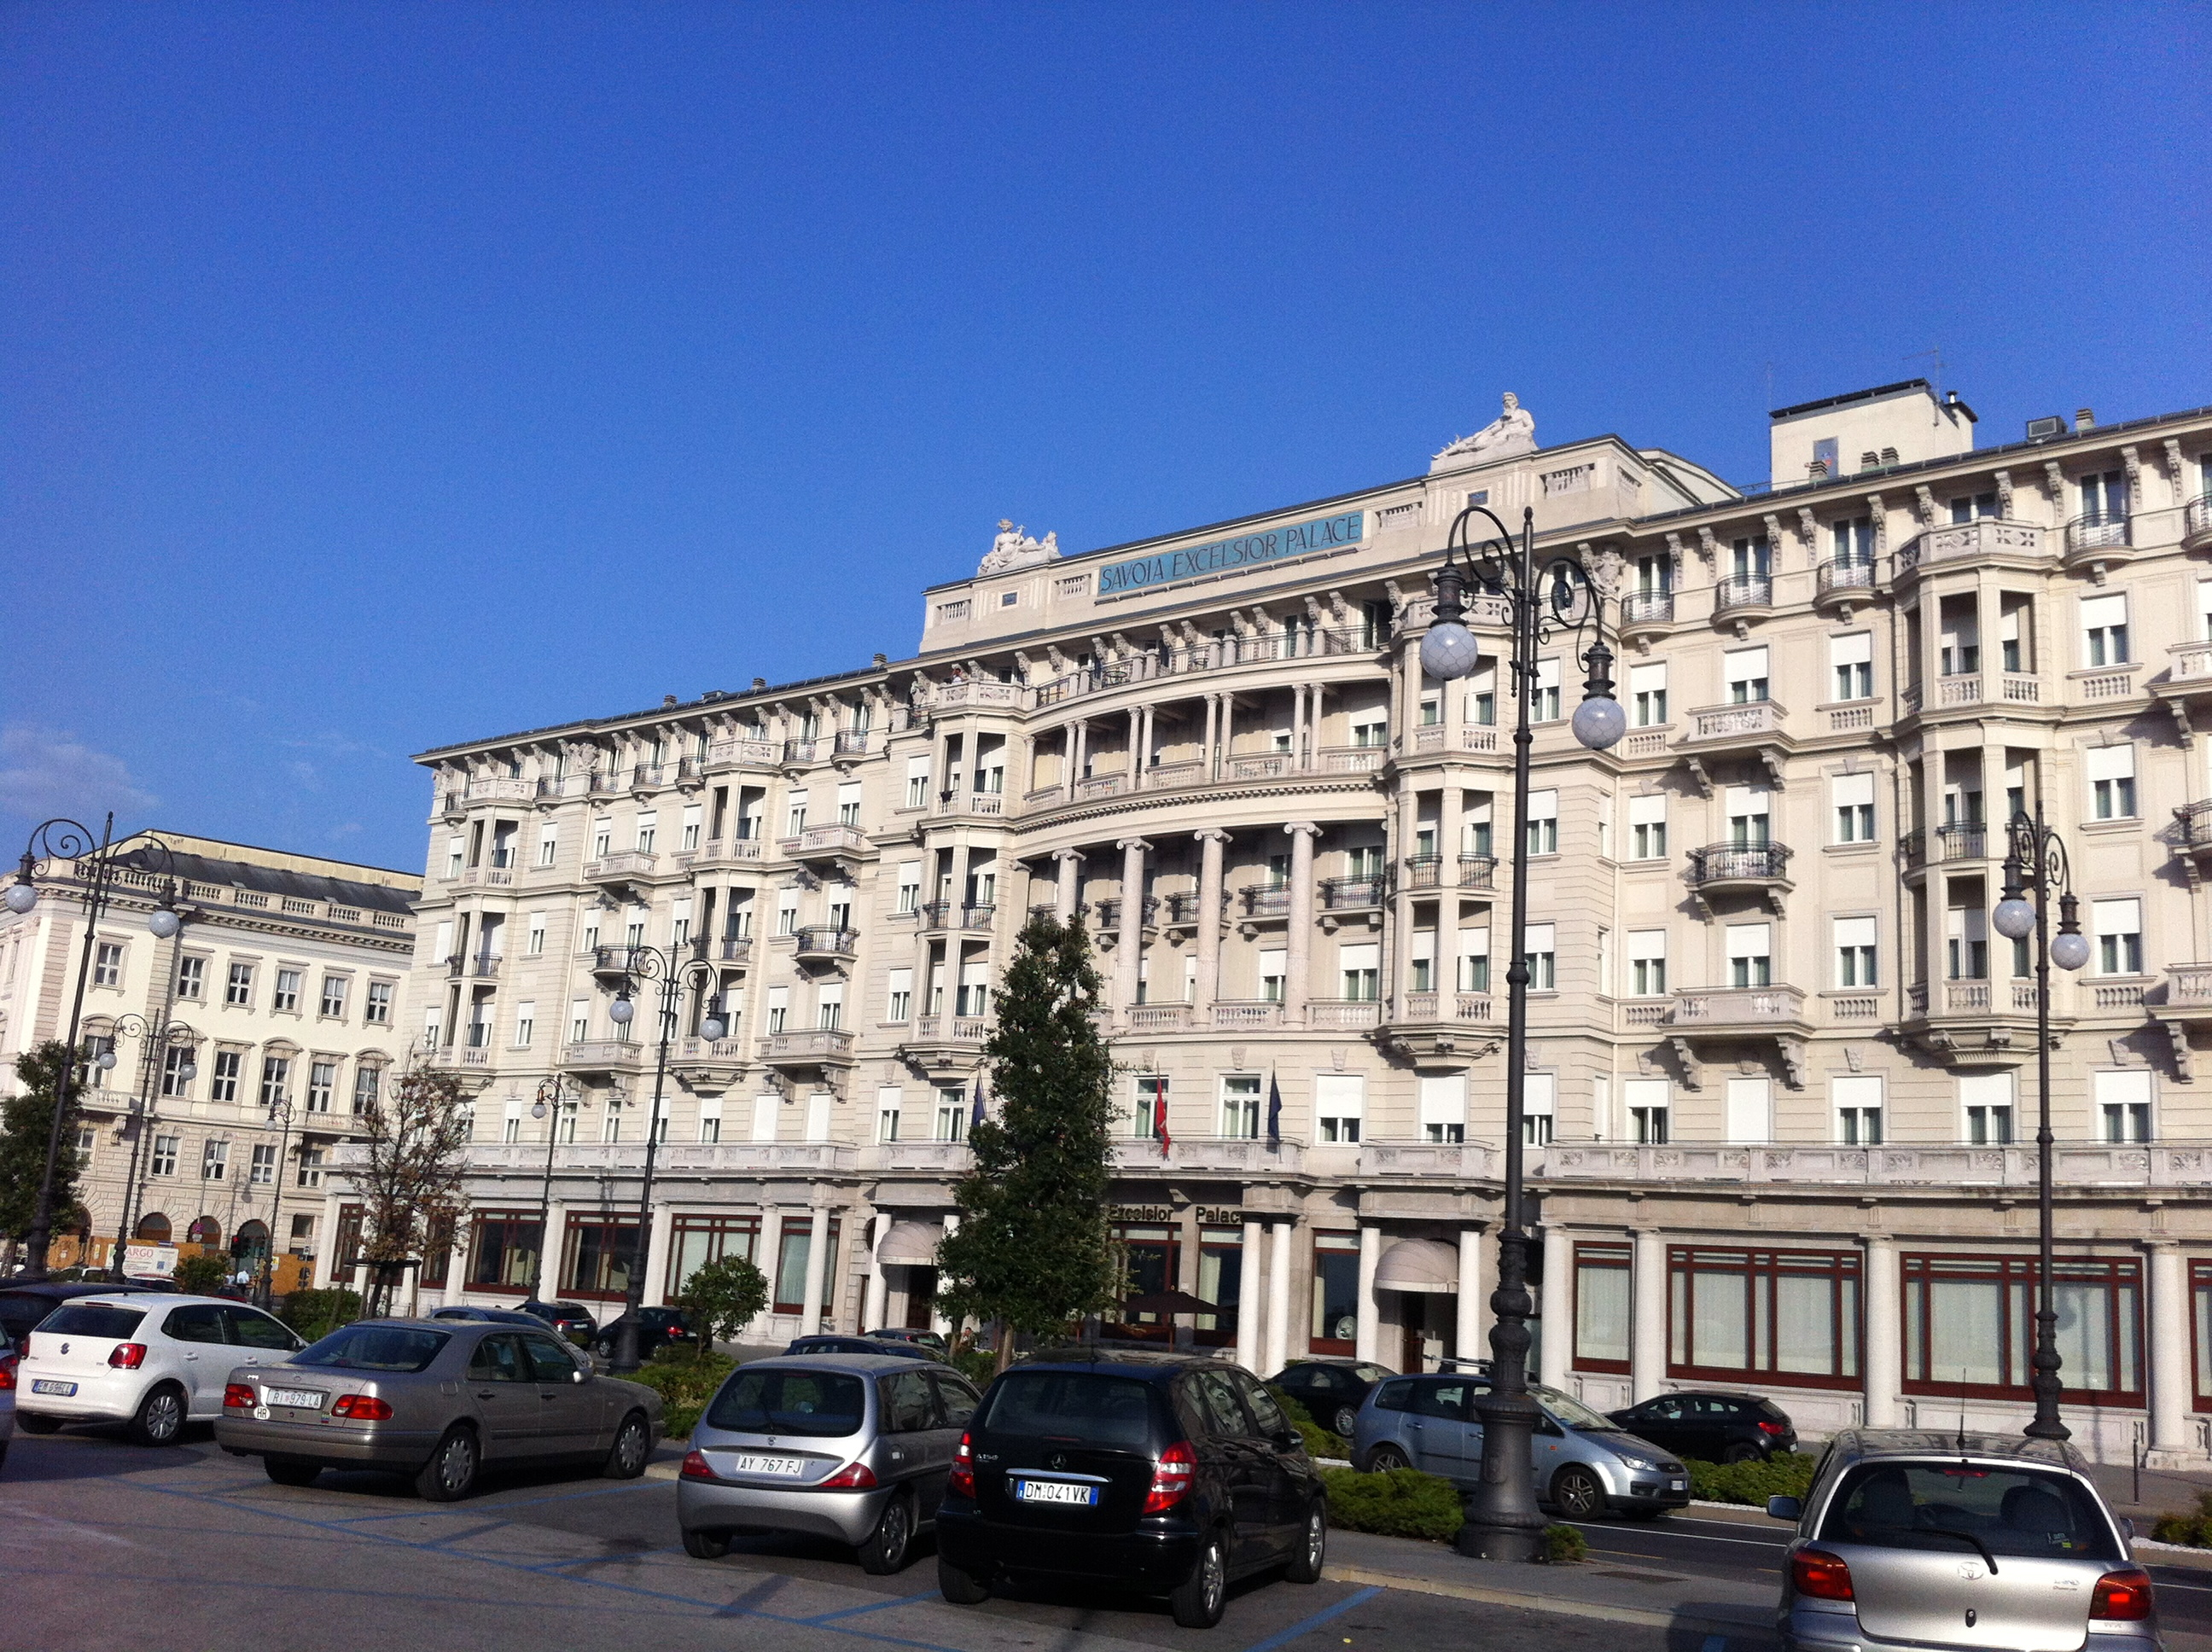 Hotel Excelsior Palace Trieste